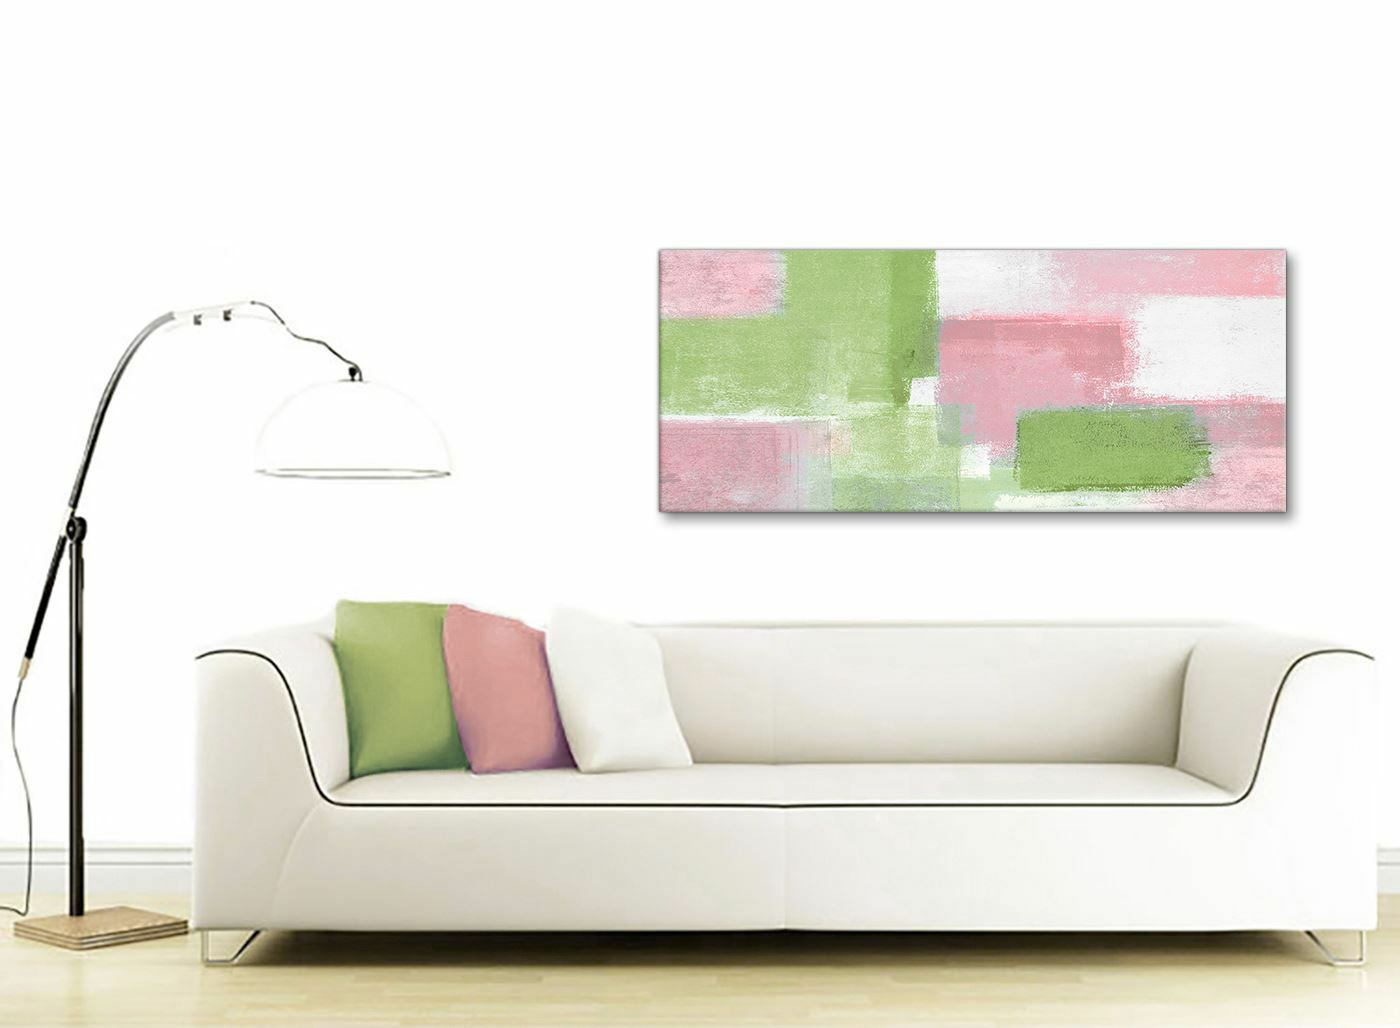 Rosa Lime Grün Living Room Canvas Accessories - Abstract Abstract Abstract 1374 - 120cm Print 40a61d